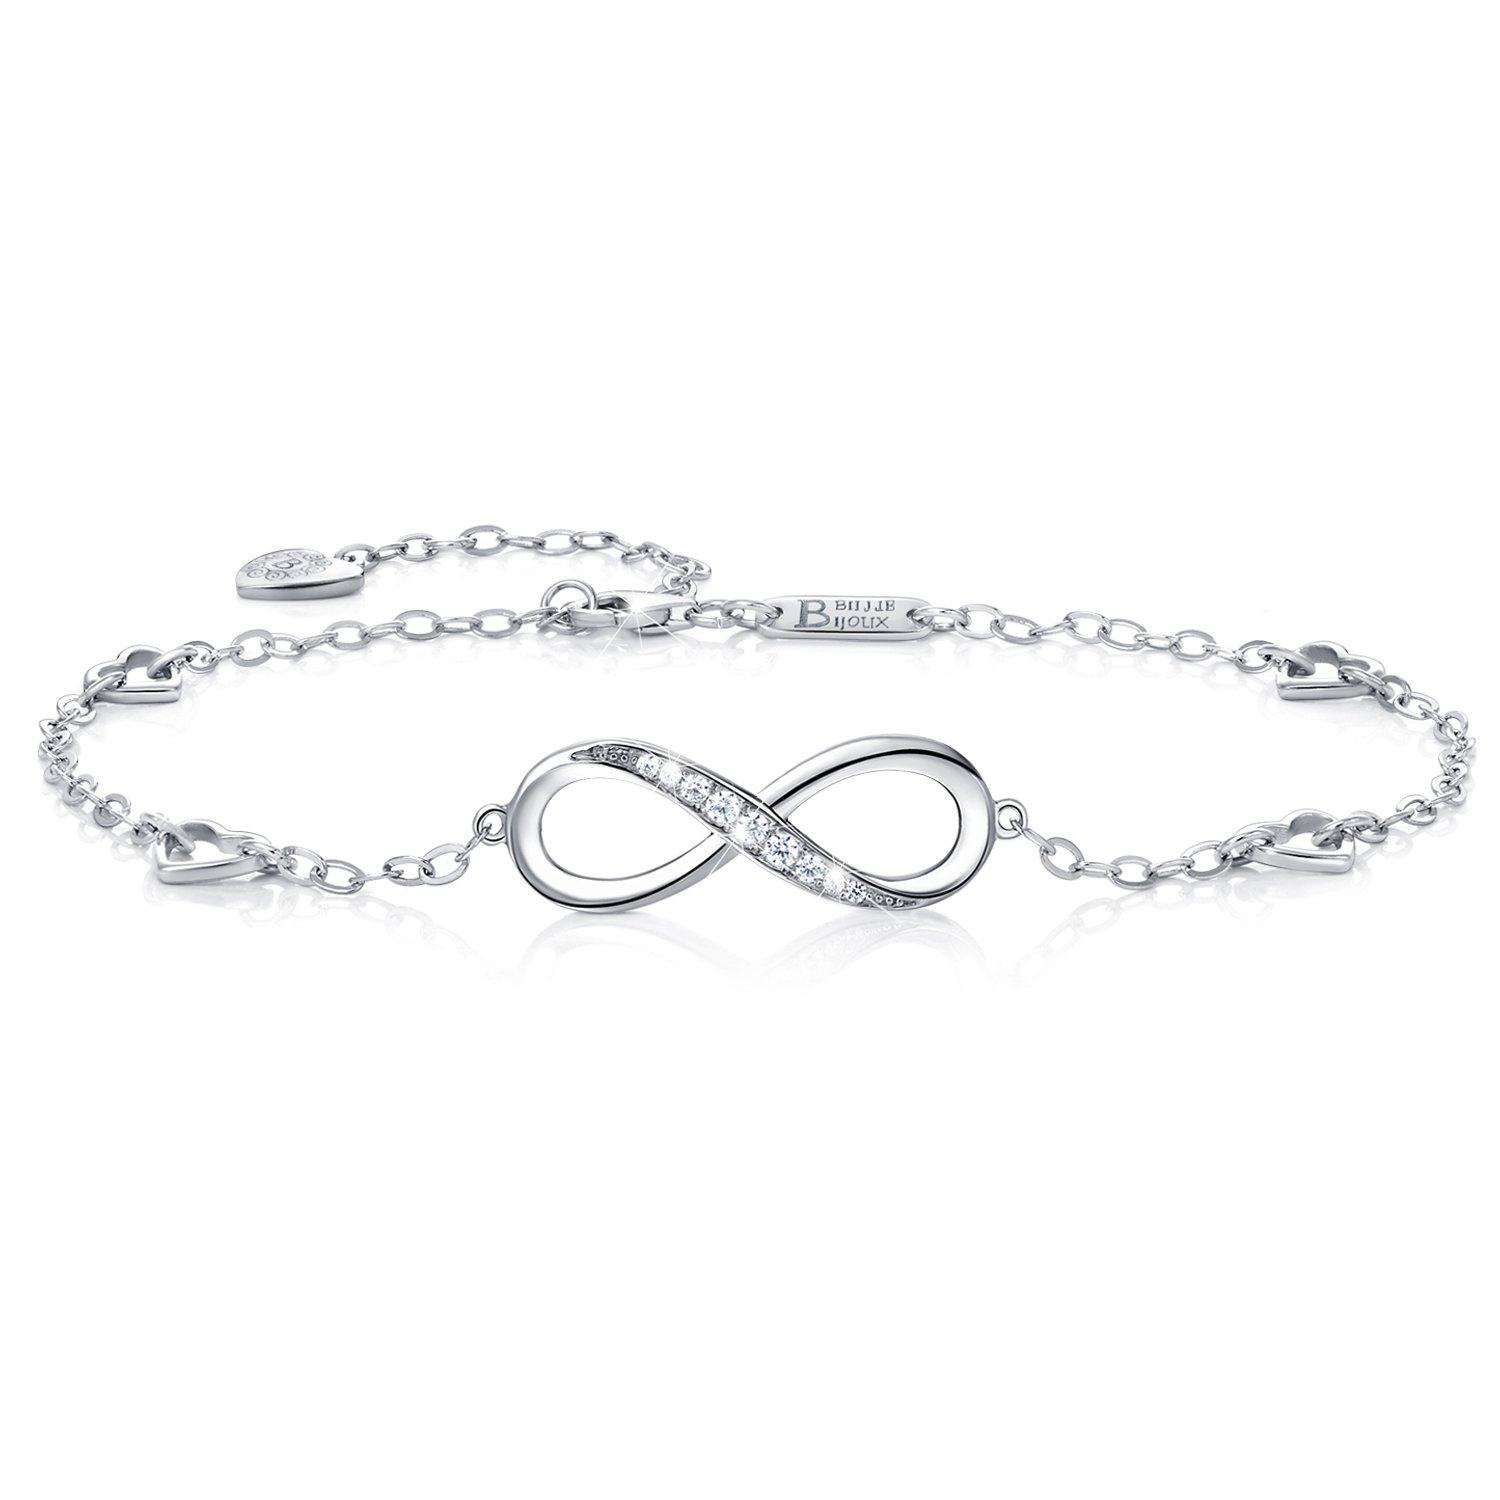 9da26b1b01d Amazon.com  Billie Bijoux Womens 925 Sterling Silver Infinity Endless Love  Symbol Charm Adjustable Anklet Bracelet